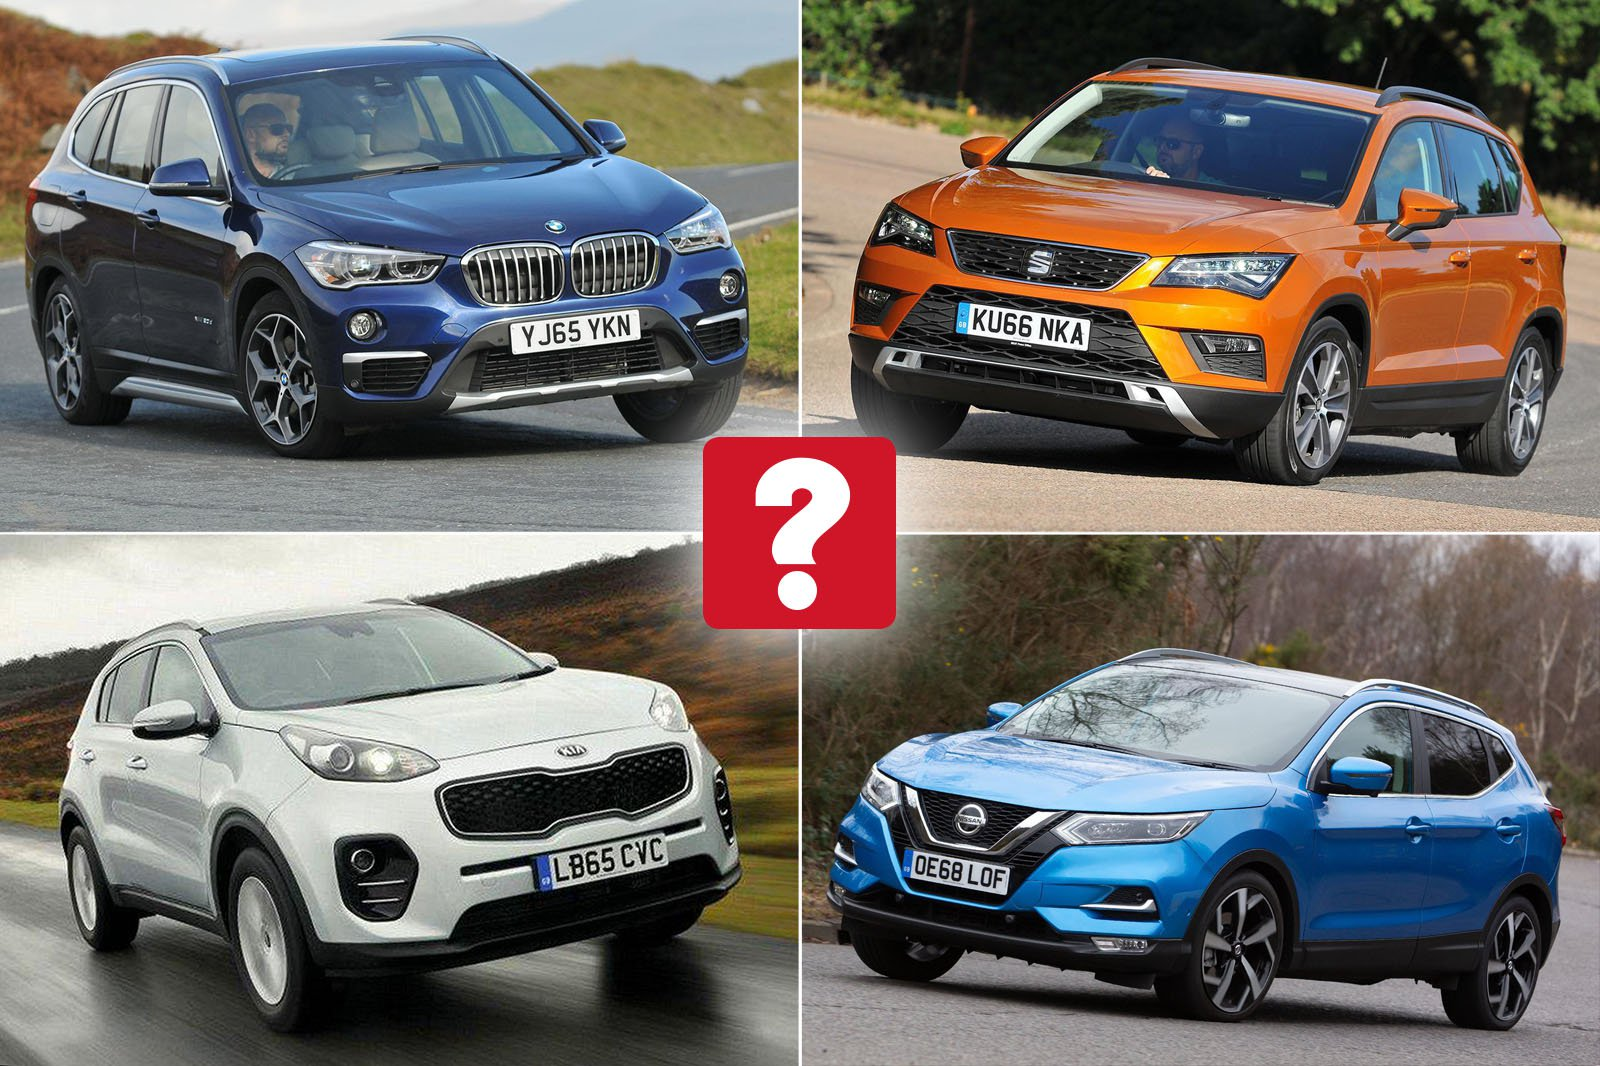 Best used family SUVs for less than £15,000